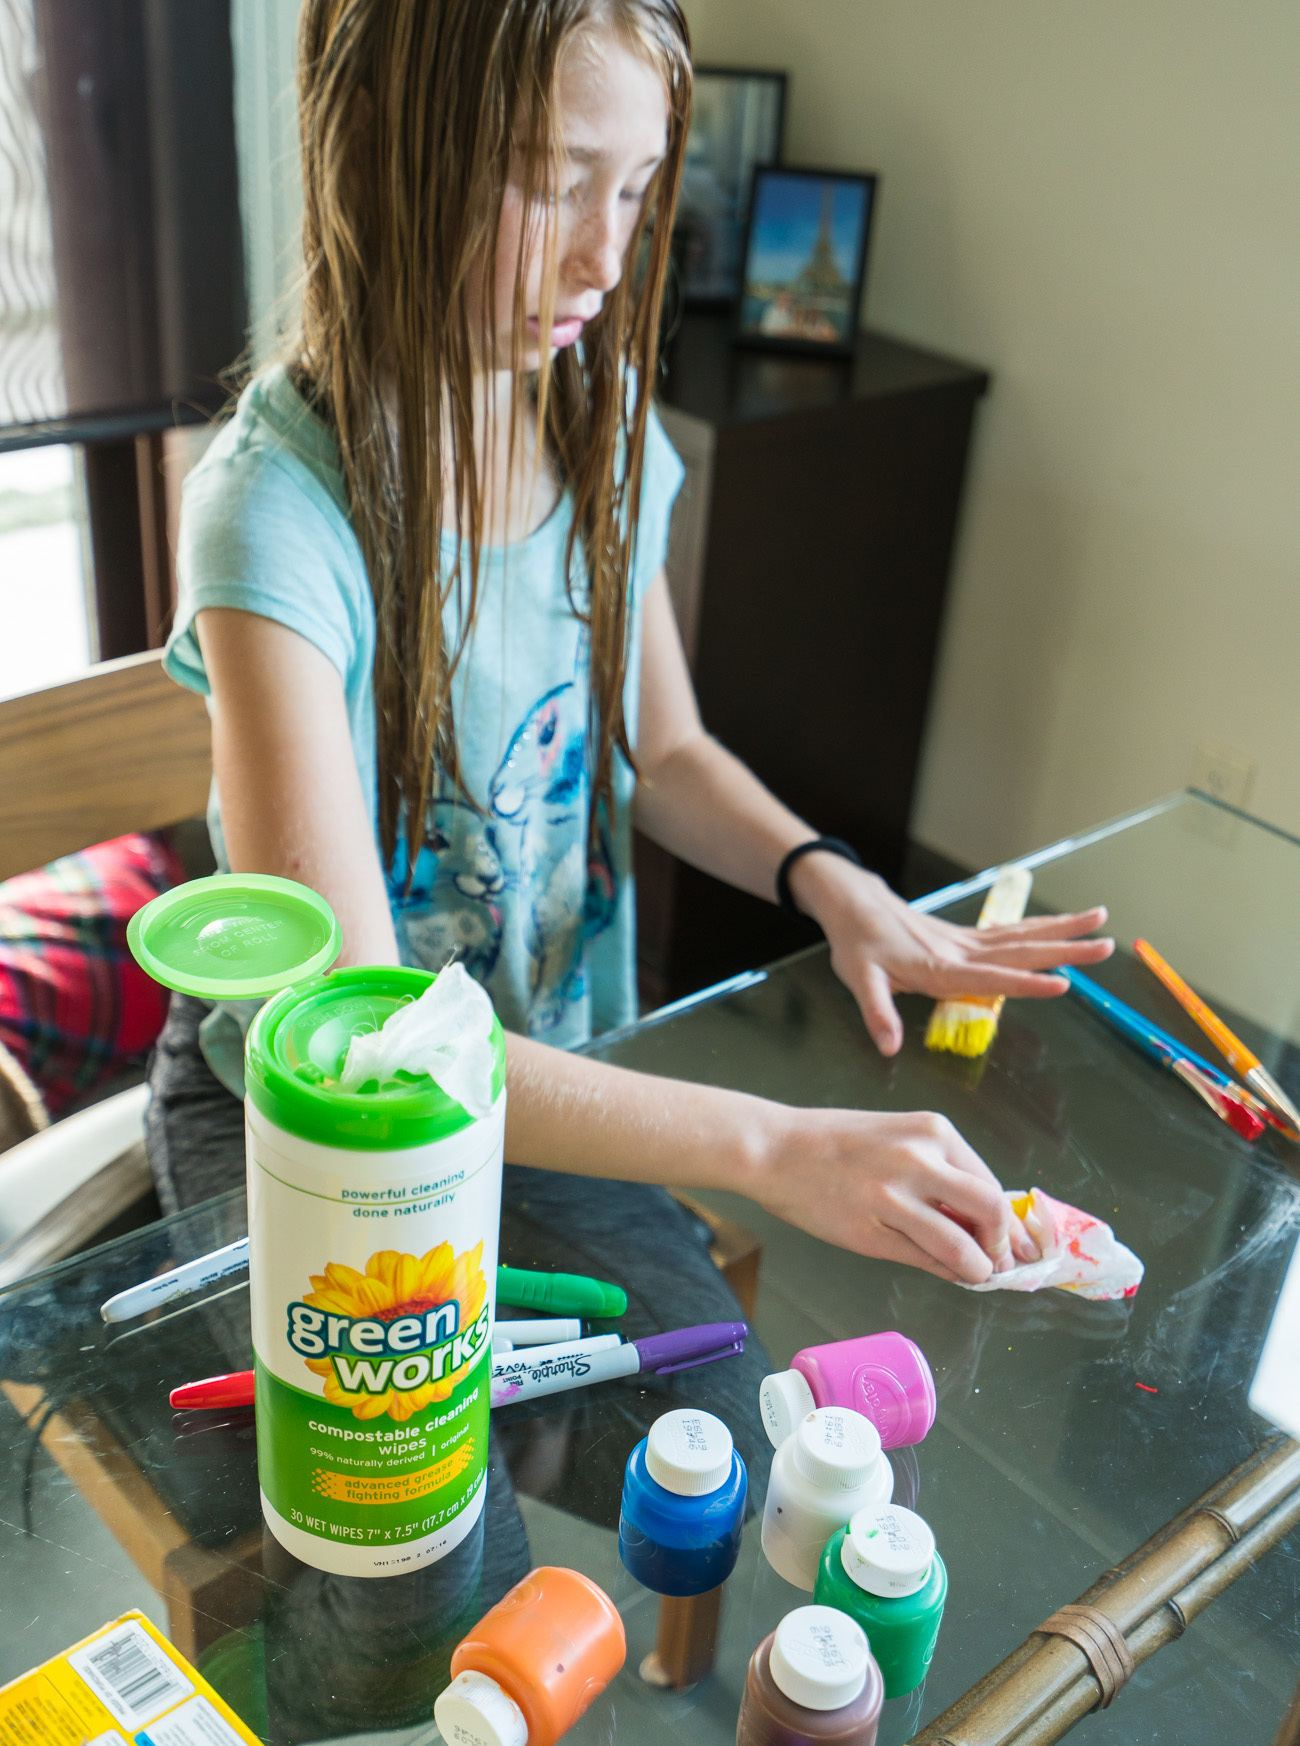 Kids can use Green Works to clean up their own mess after crafting.